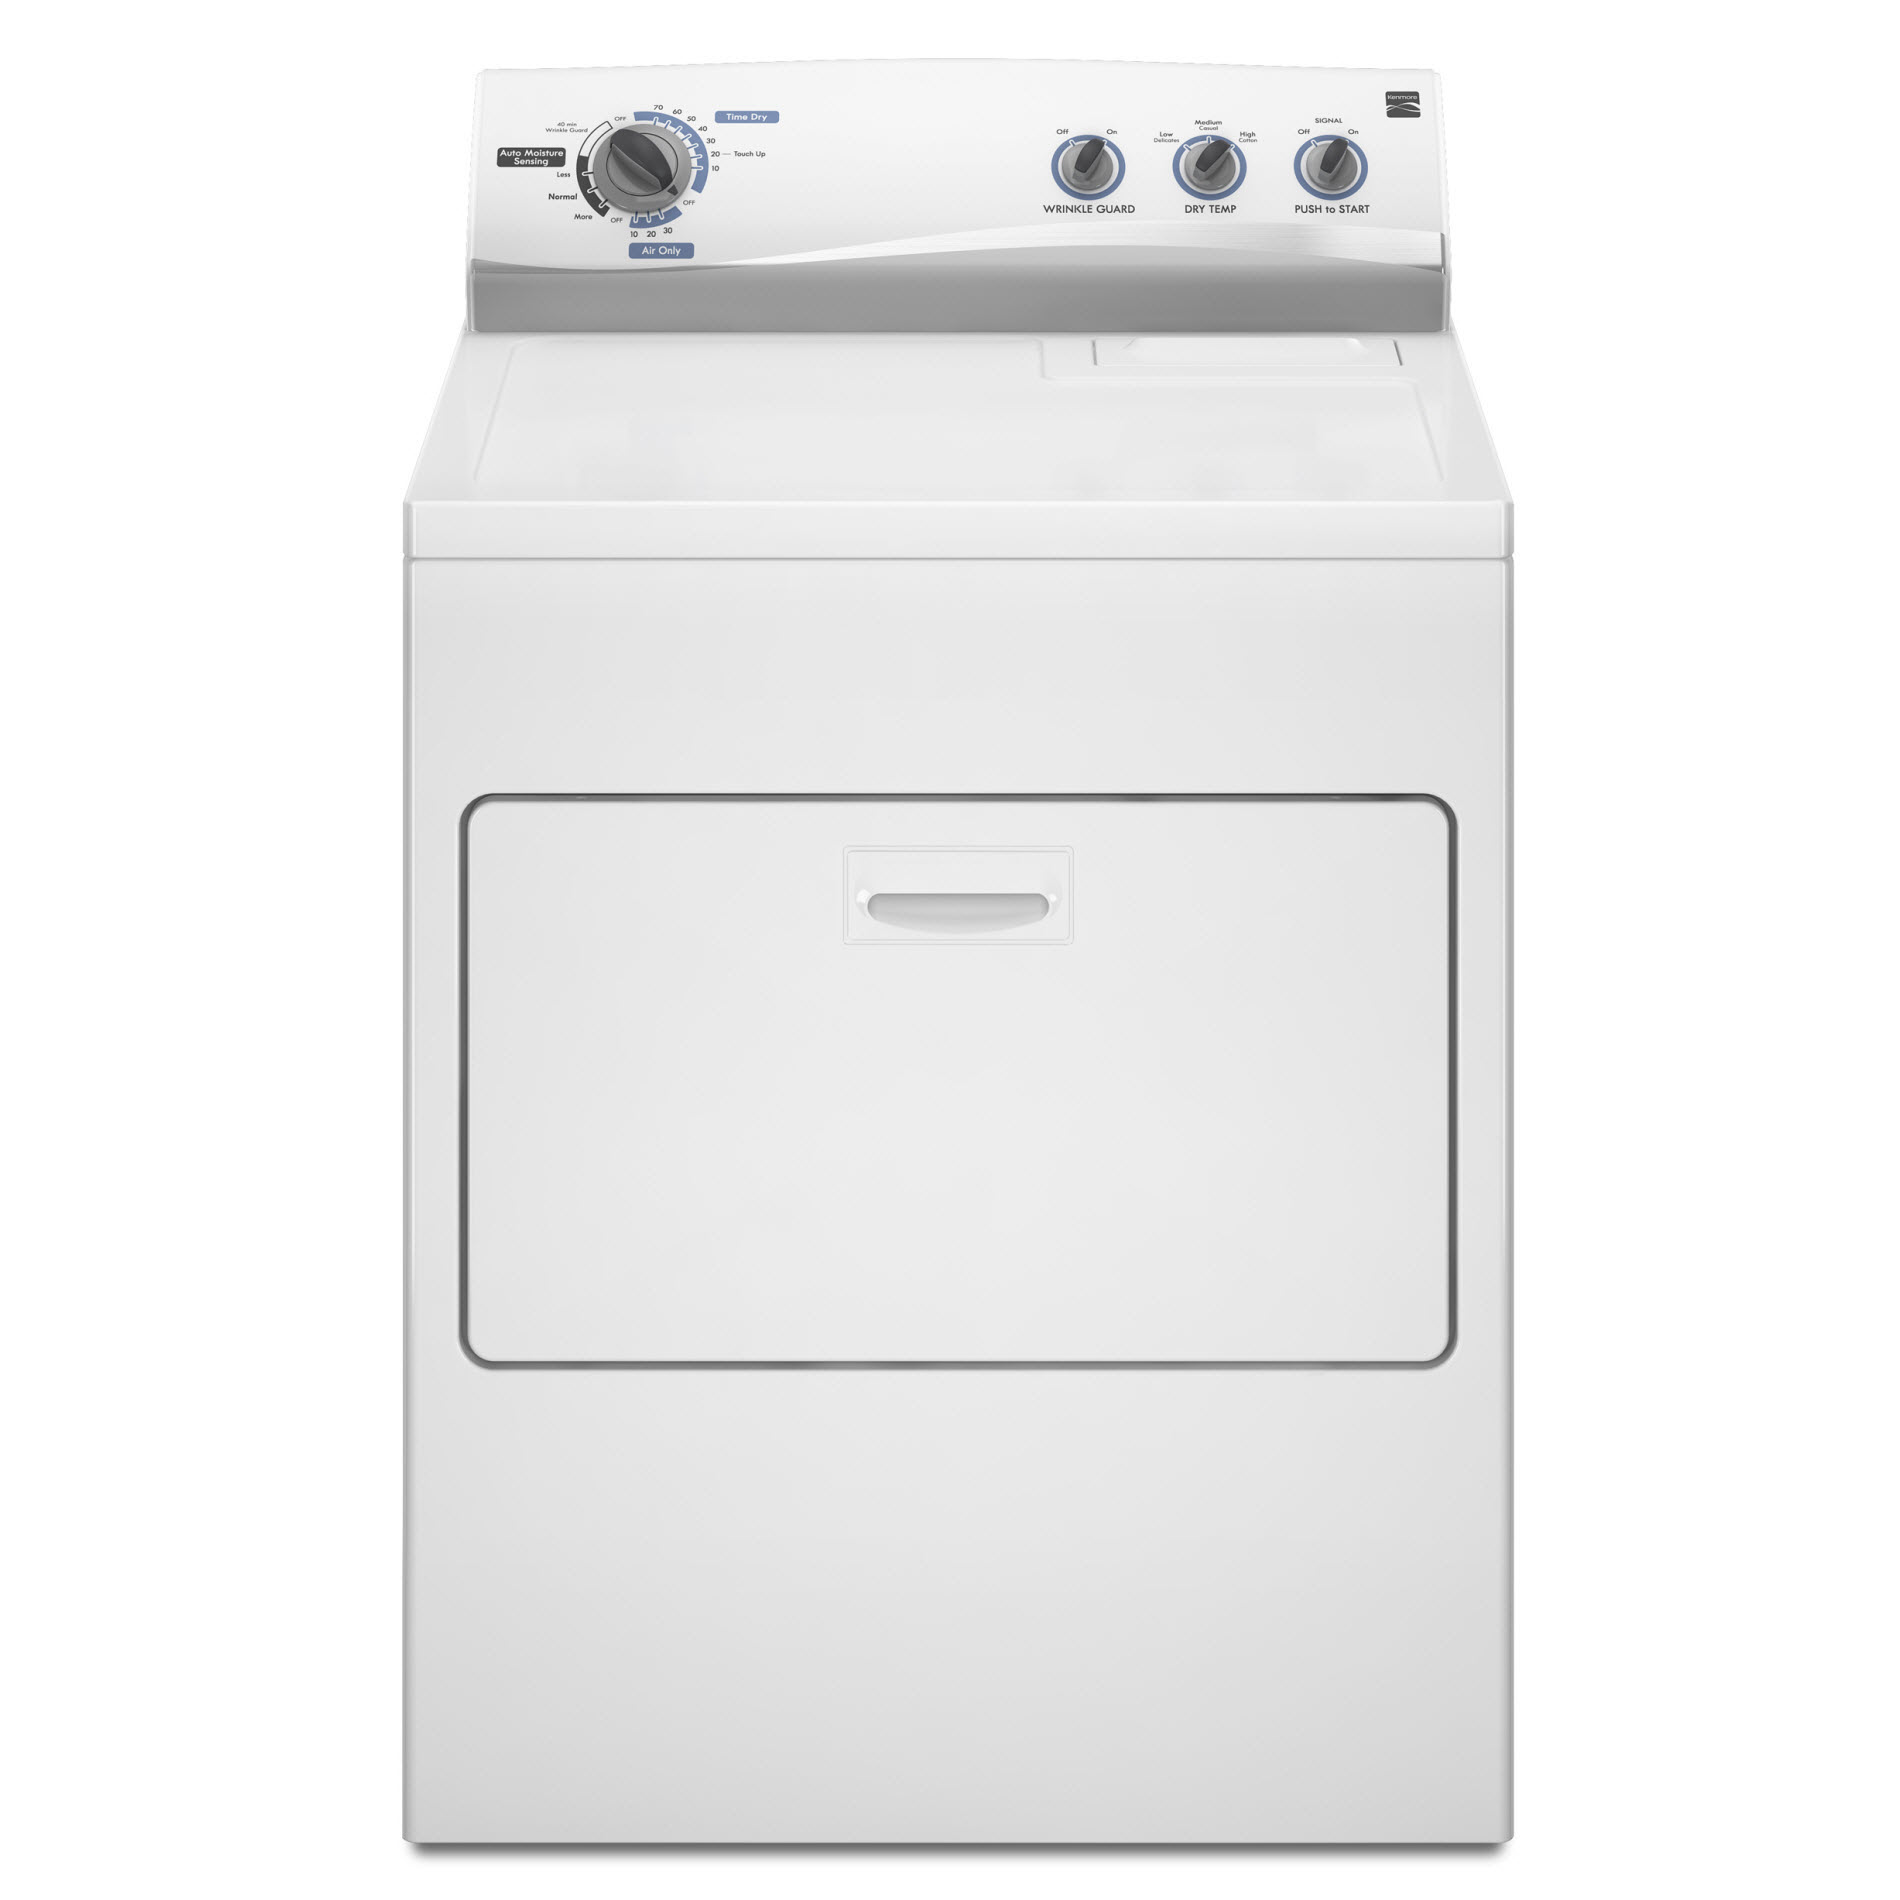 hight resolution of kenmore washer fuse location kenmore washer noise wiring whirlpool dryer belt diagram whirlpool dryer electrical schematic